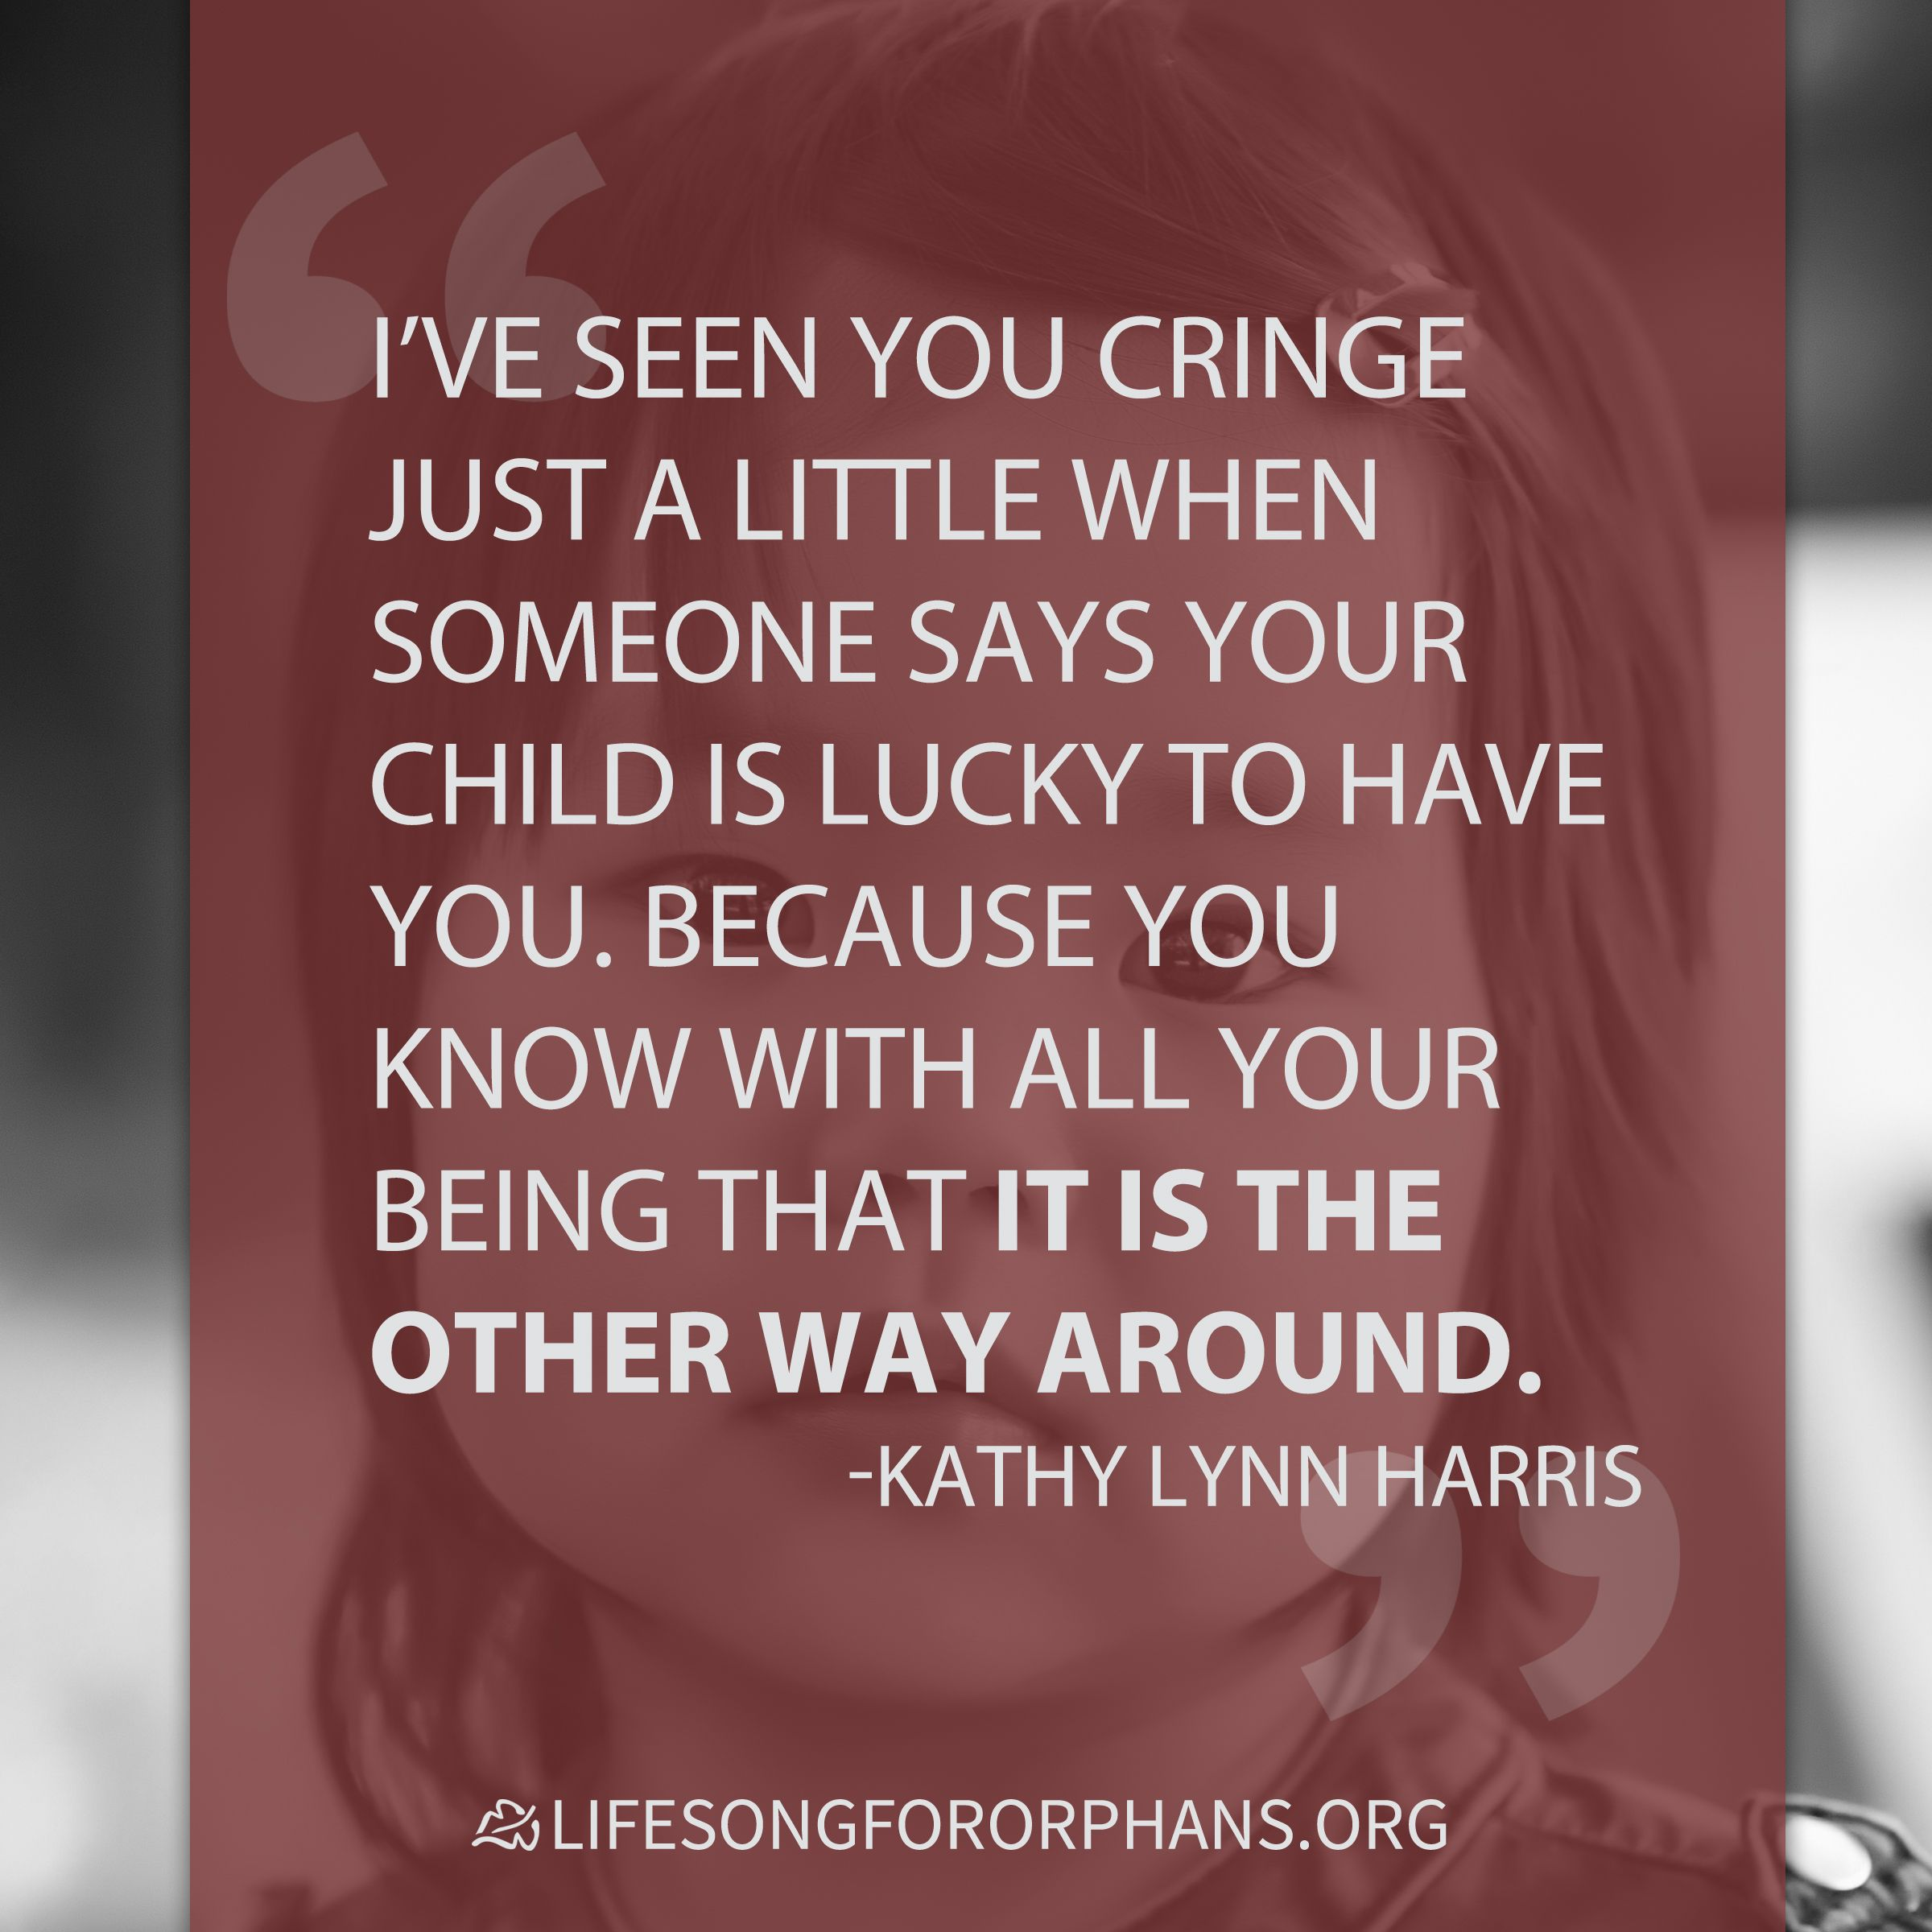 Foster Care Quotes I've Seen You Cringe Just A Little When Someone Says Your Child Is